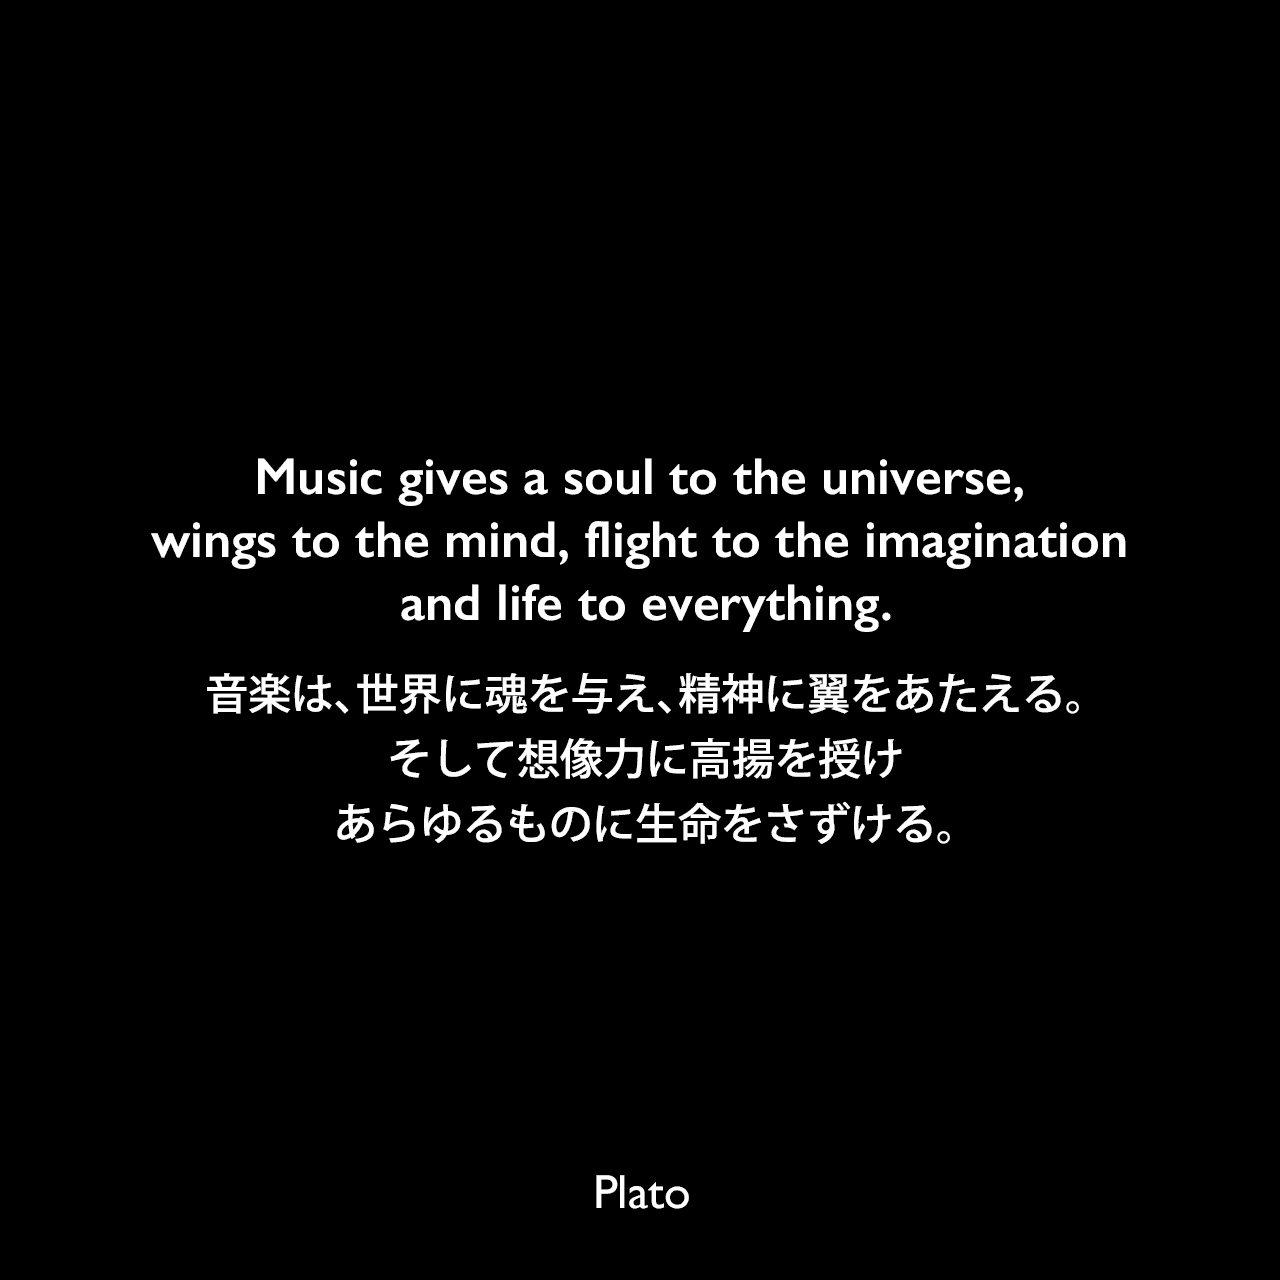 Music gives a soul to the universe, wings to the mind, flight to the imagination and life to everything.音楽は、世界に魂を与え、精神に翼をあたえる。そして想像力に高揚を授け、あらゆるものに生命をさずける。Plato